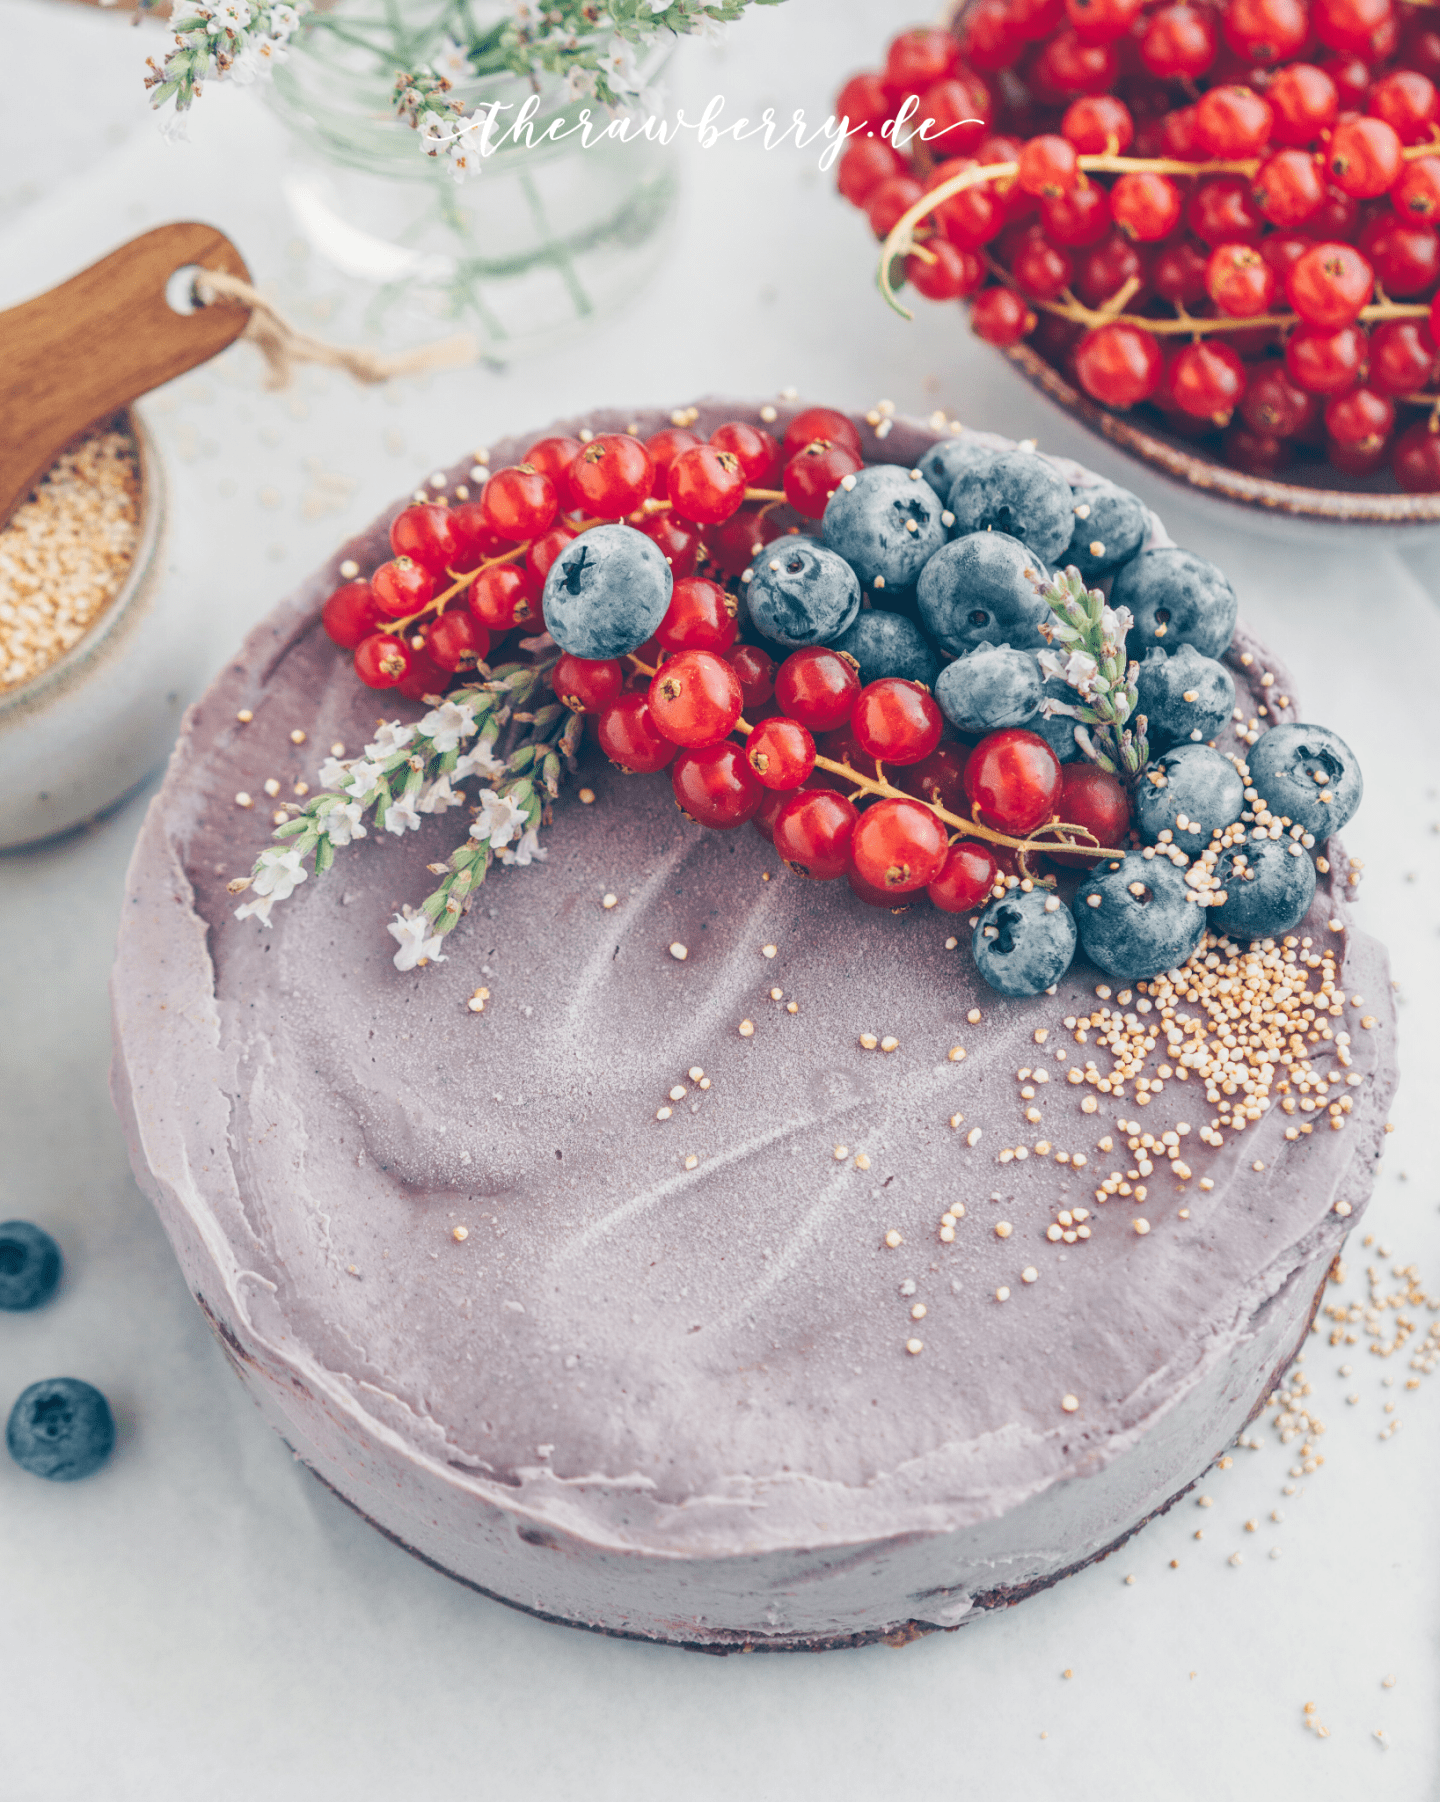 vegan, blueberries, blaubeeren, kuchen, cake, raw, roh, ohne backen, no bake, gluten free, glutenfrei, diät, diet, lecker, delicious, recipe, rezept, healthy, gesund, einfach, simple, berries, beret, therawberry, cookie dough, Keksteig, Schokolade, chocolate, purple, Lila, lavender, lavender